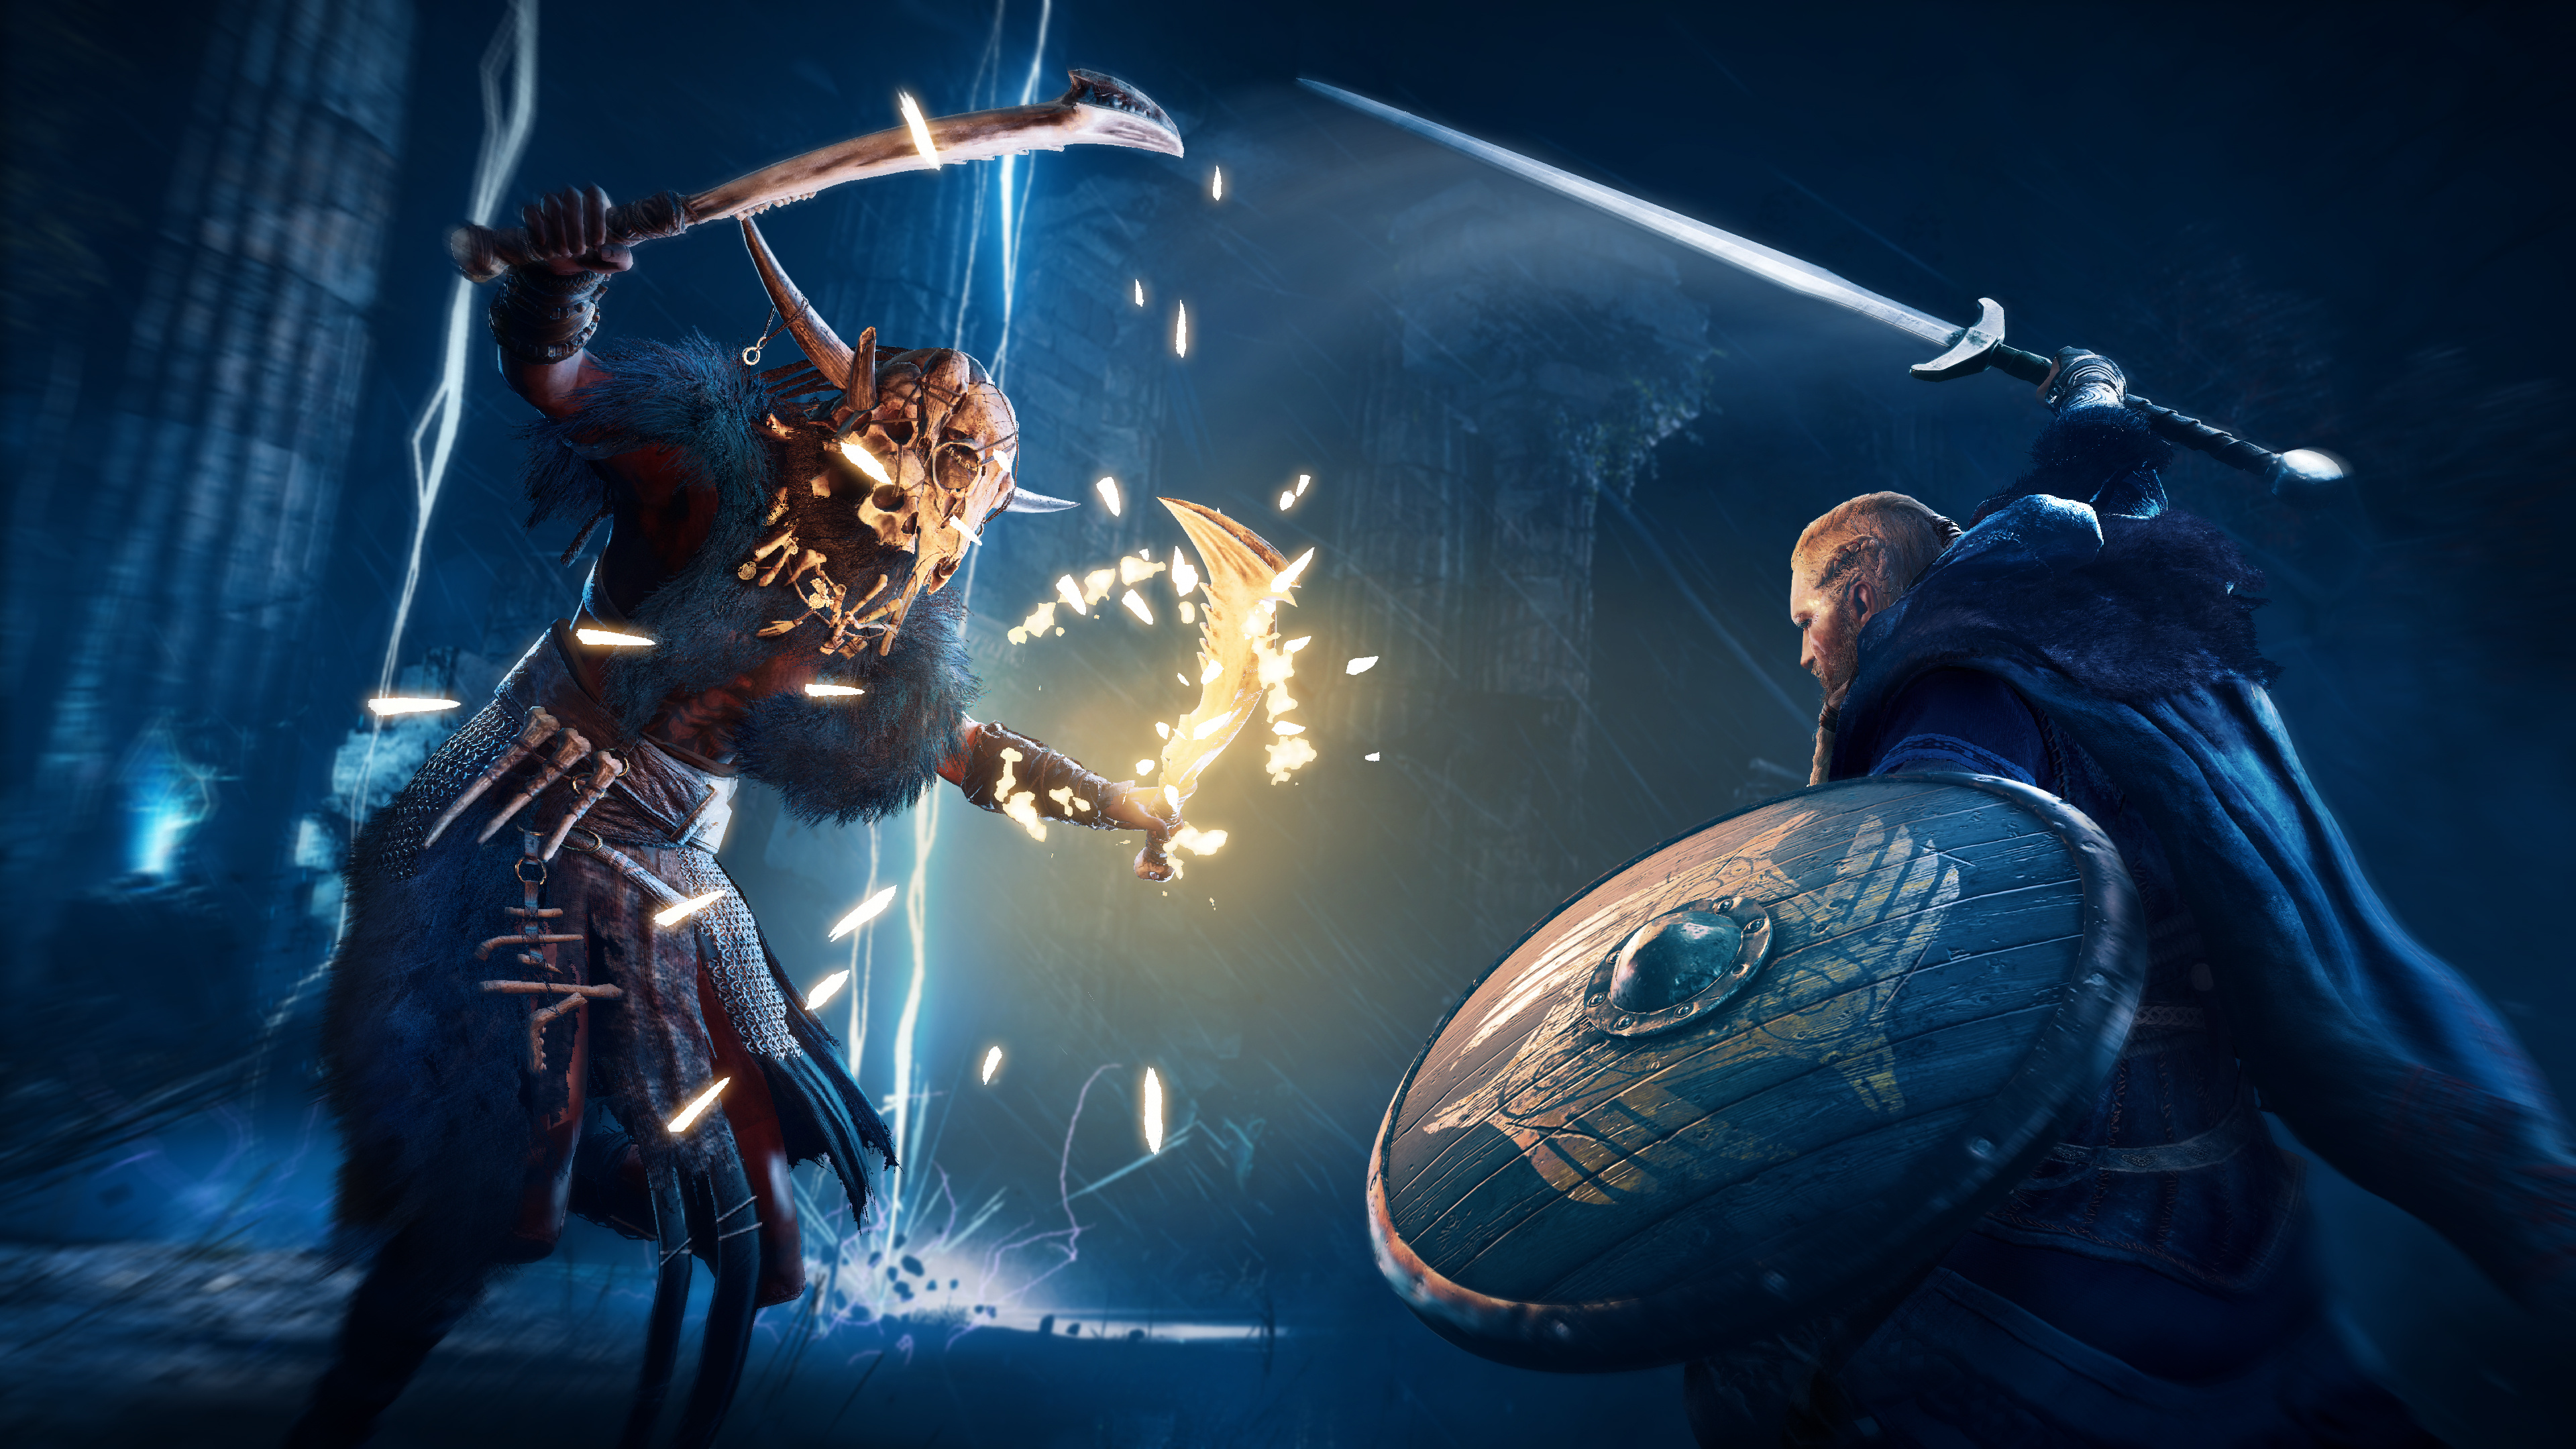 One Handed Swords are Coming to Assassin's Creed Valhalla Following Months  of Fan Requests - Push Square